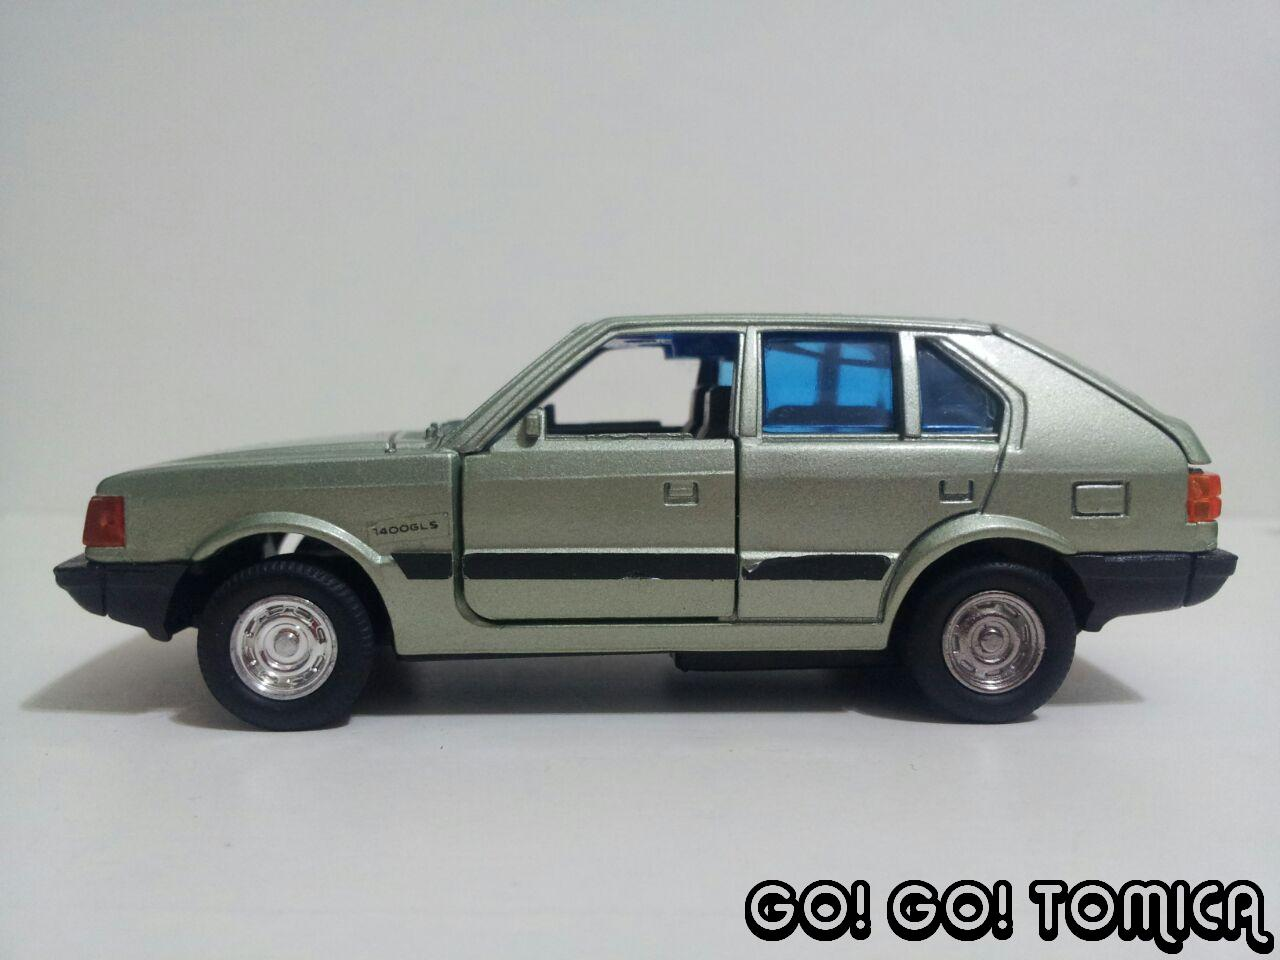 Go Tomica Hyundai Pony Ii Reguler Datsun Blue I Remembered That One Of My Primary School Teachers Drove A Tone Close To Todays Wrx And Had Celica Xx2800gt